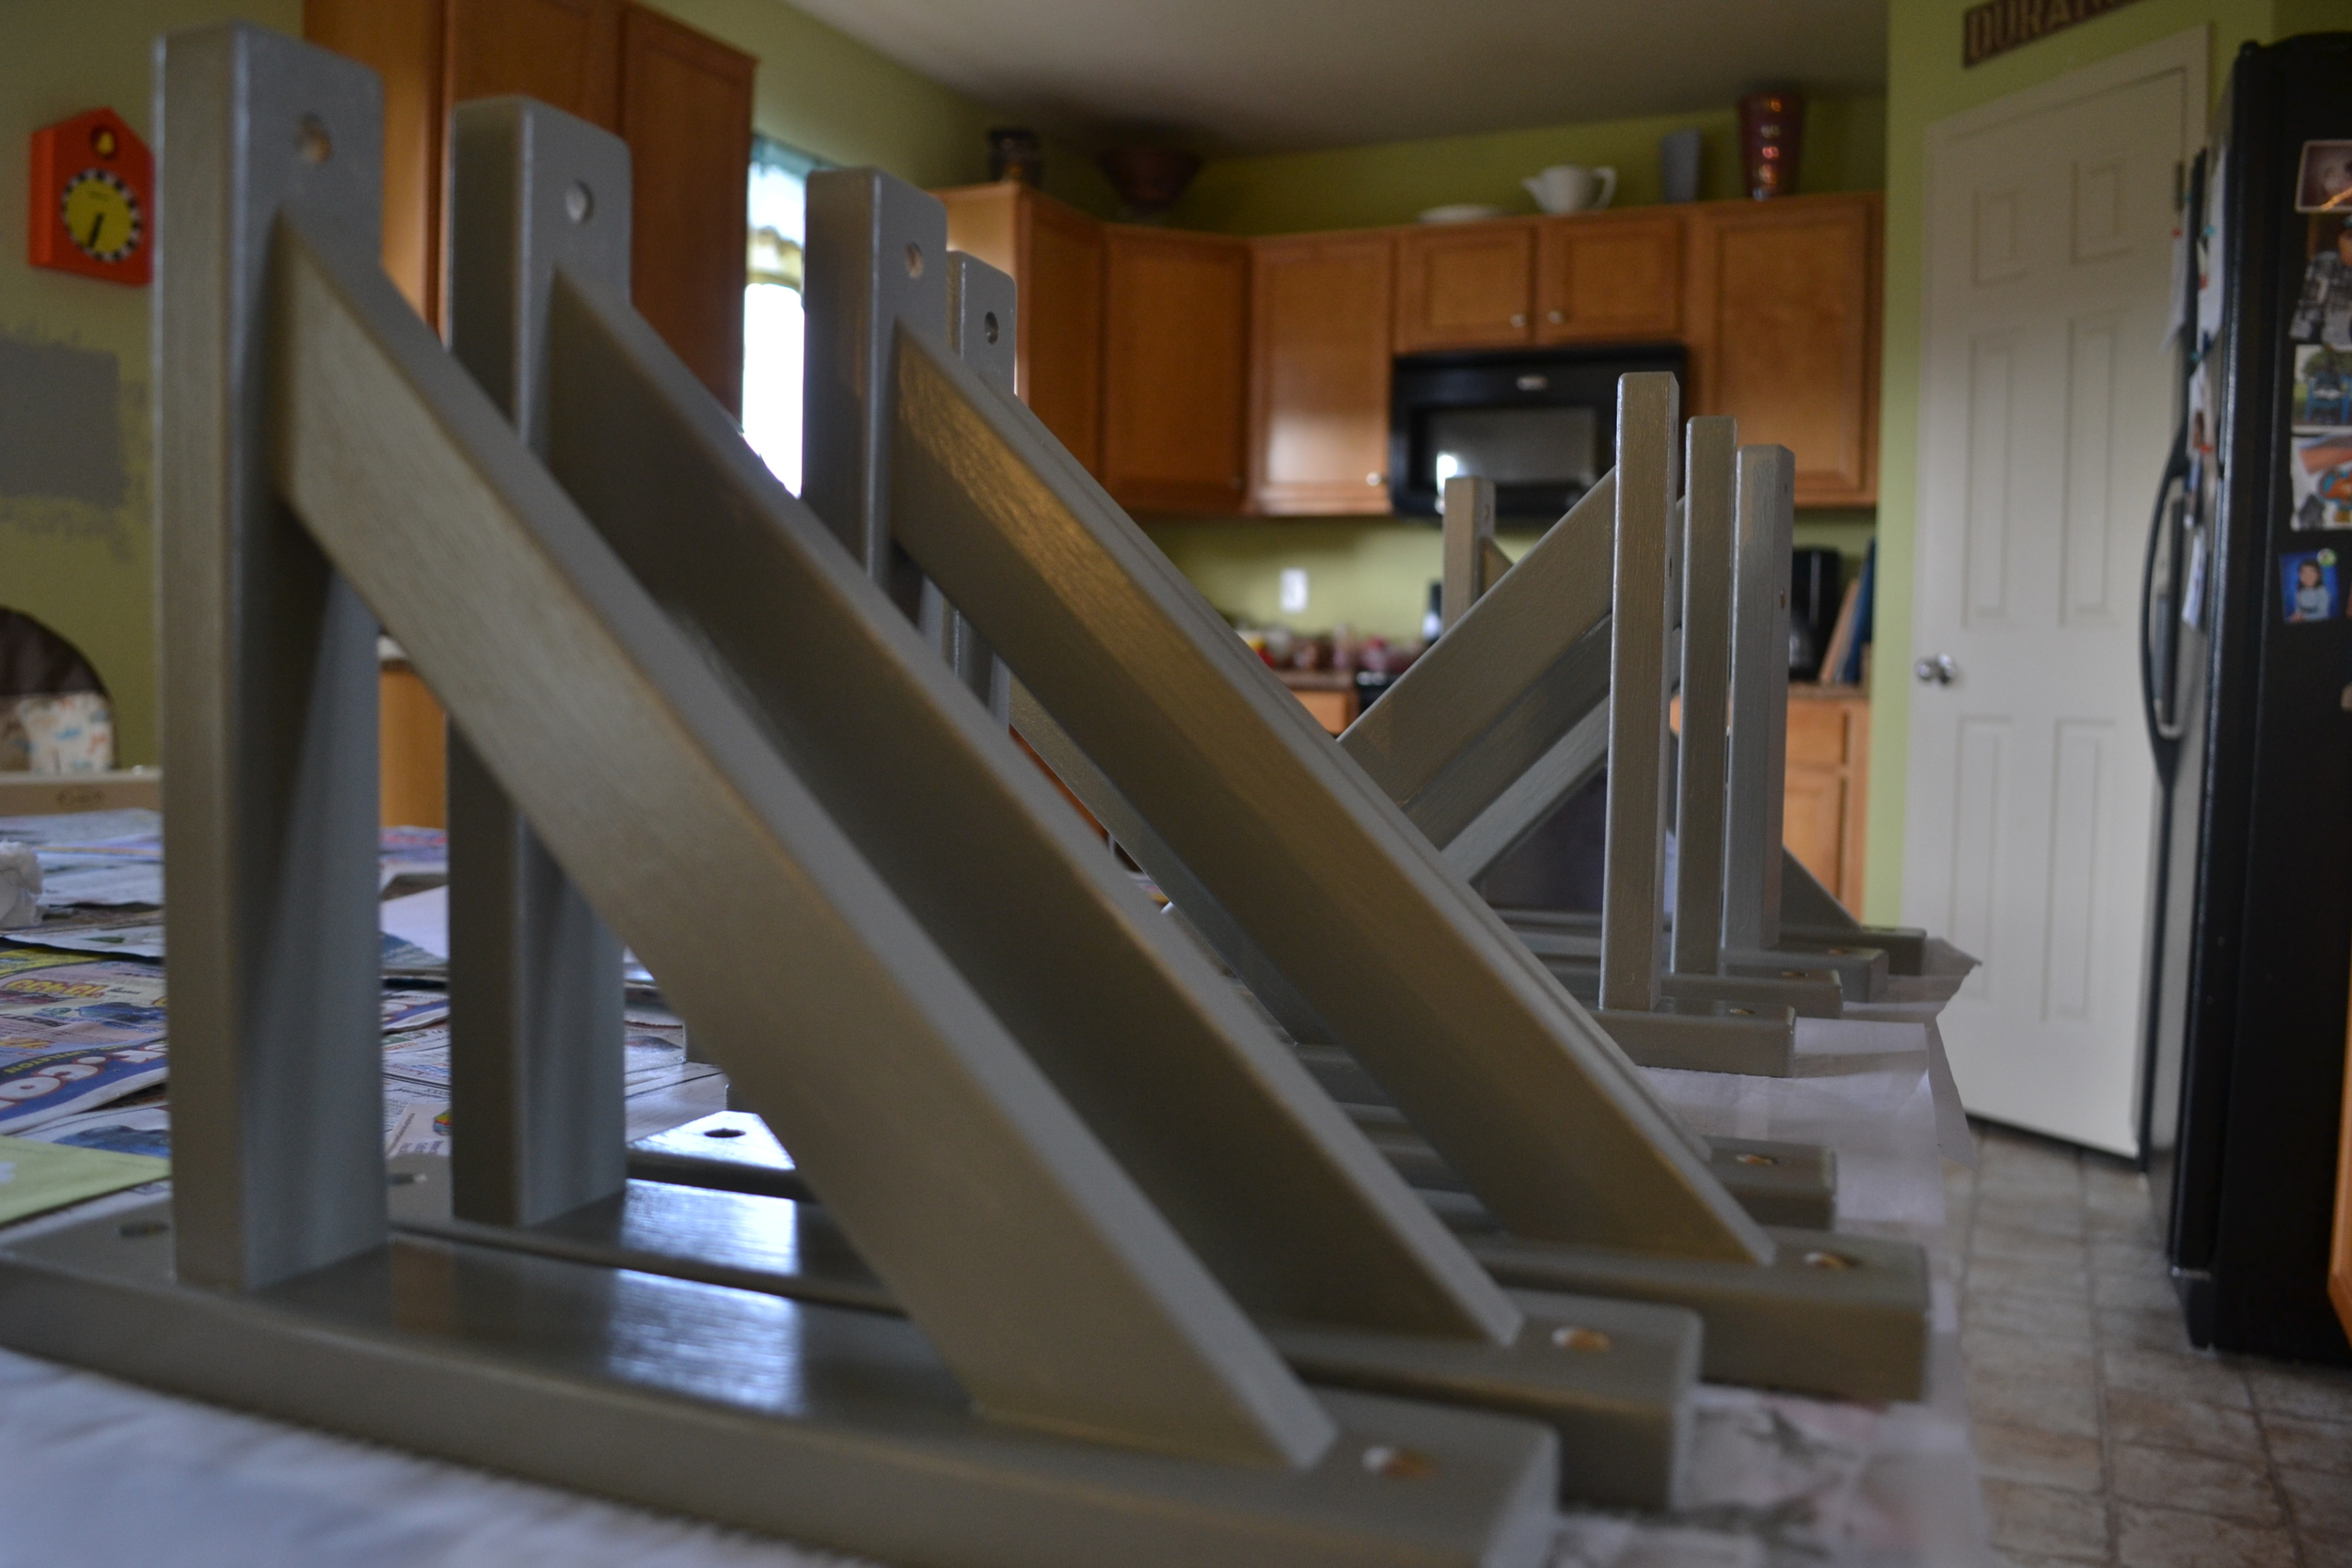 Straight 10 shelf brackets from Tyler Morris Woodworking